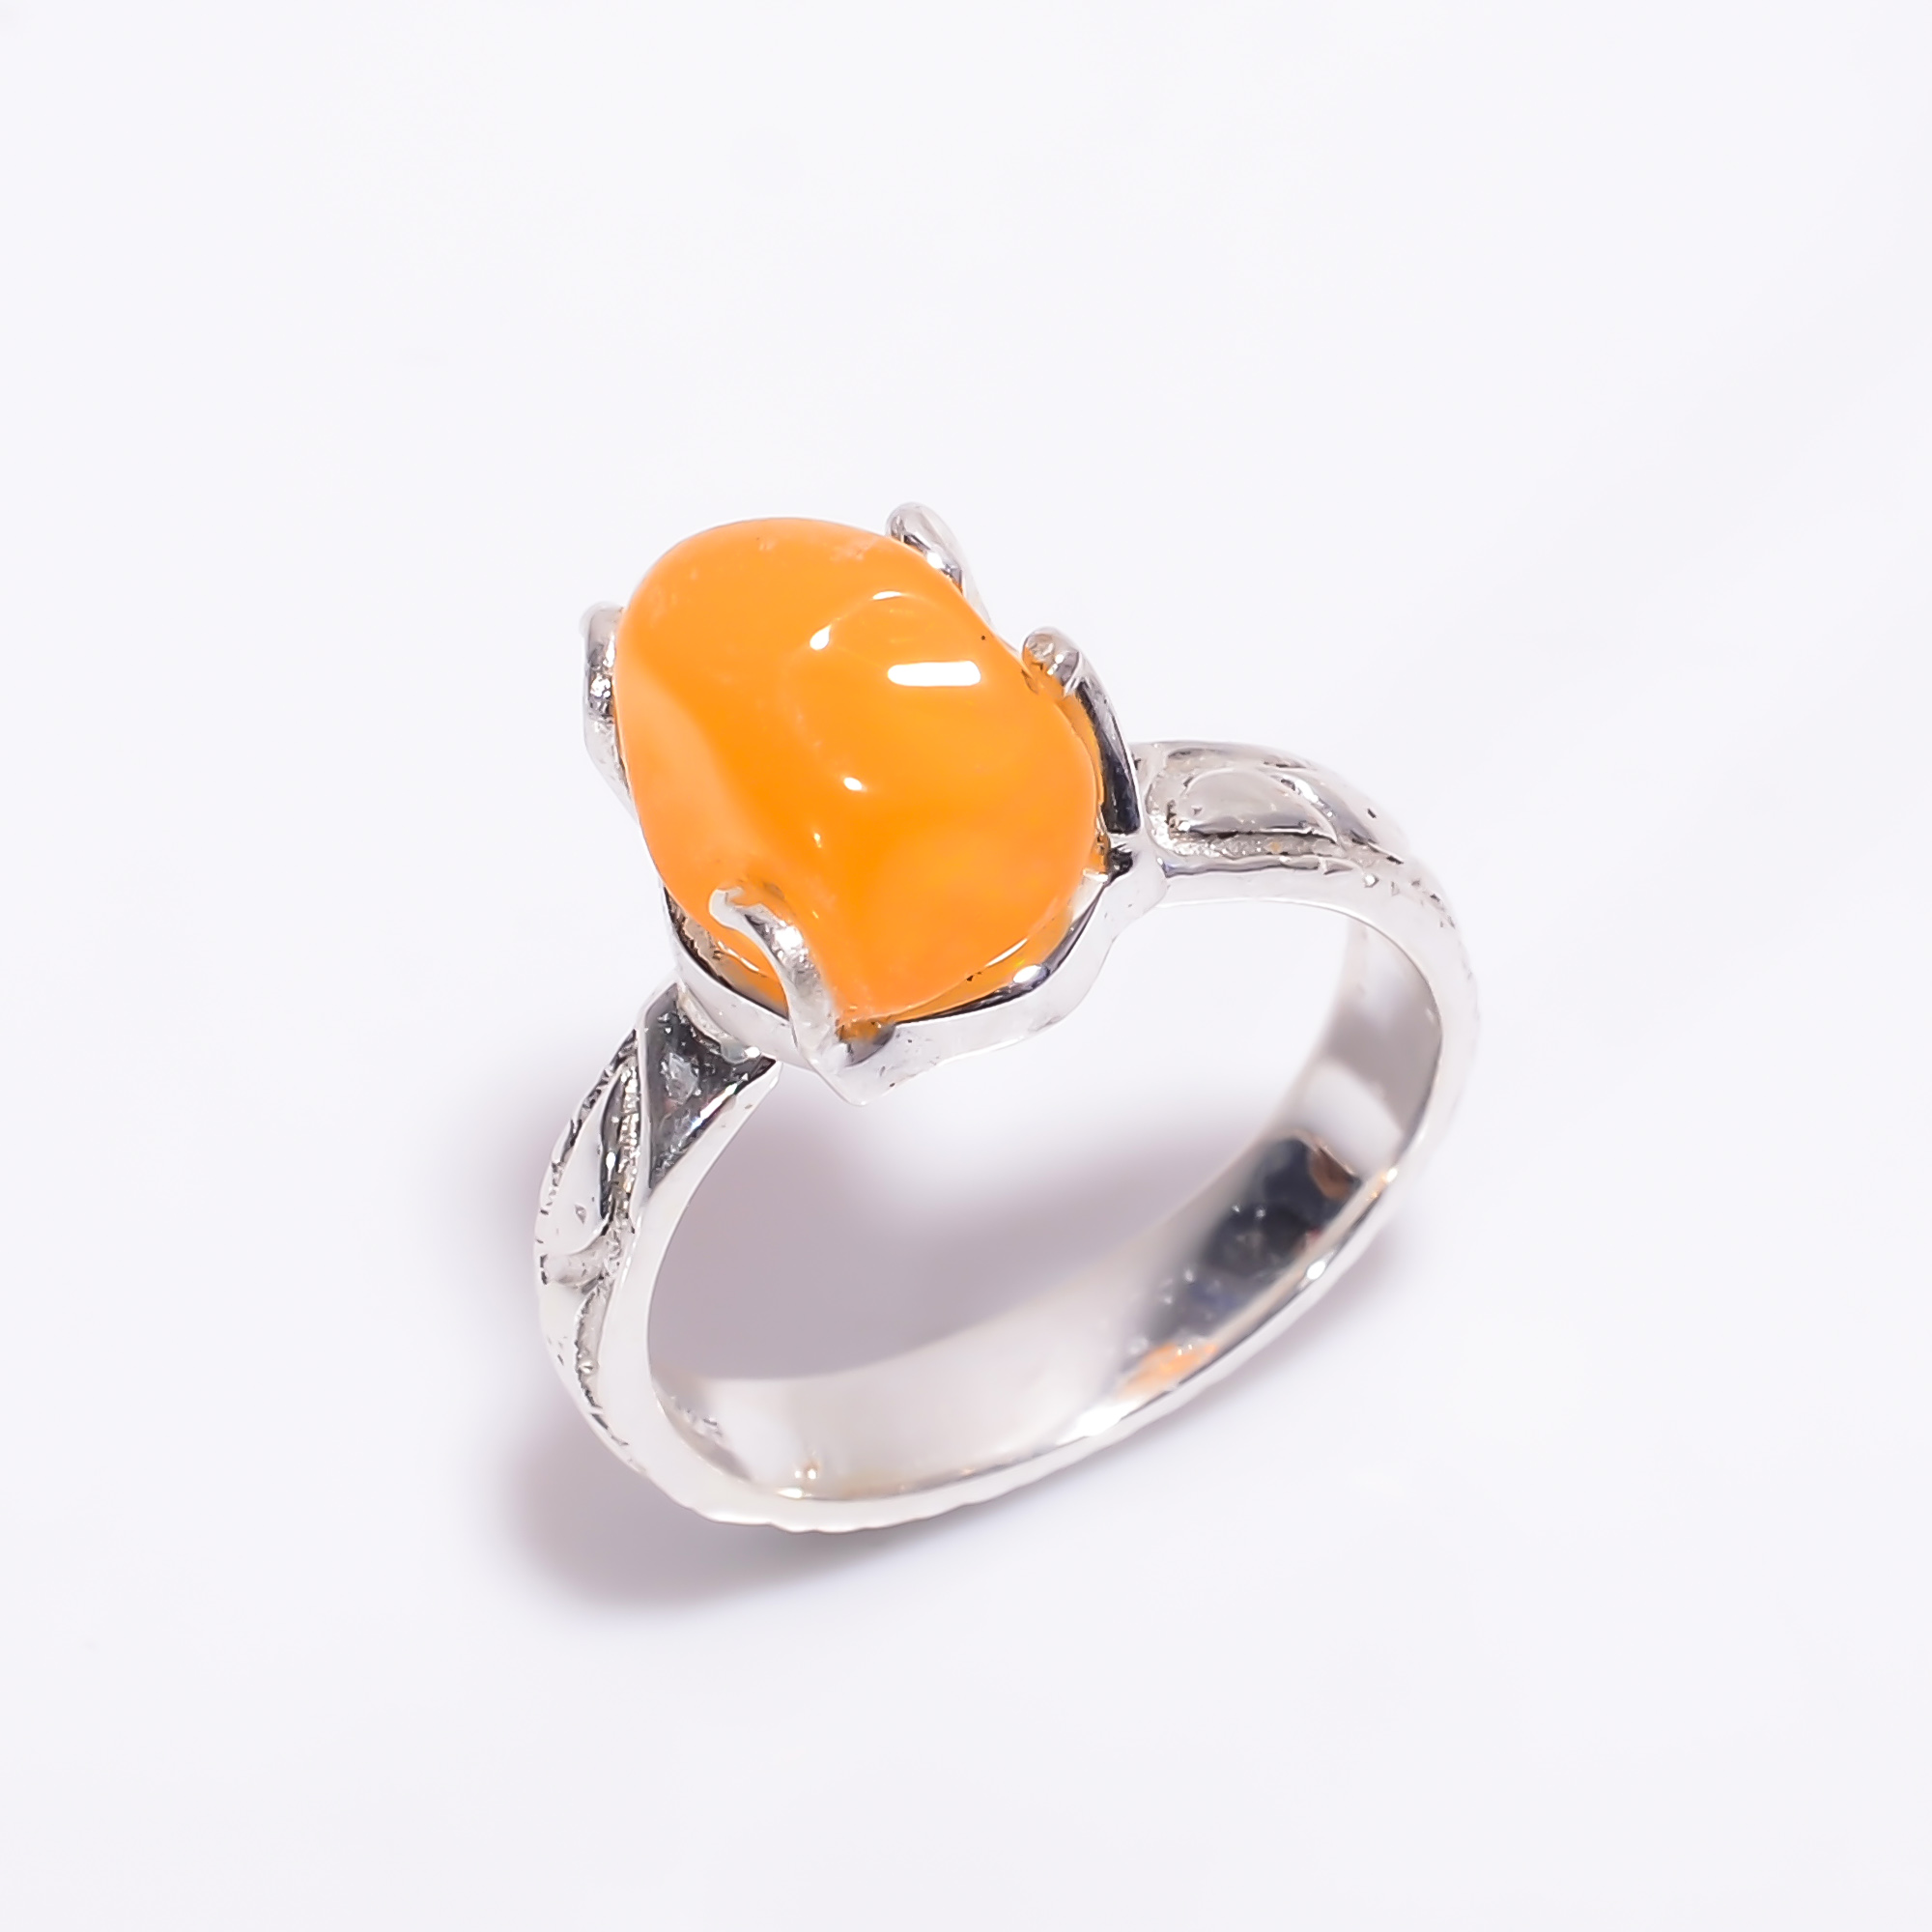 Mexican Opal Raw Gemstone 925 Sterling Silver Ring Size US 7.25